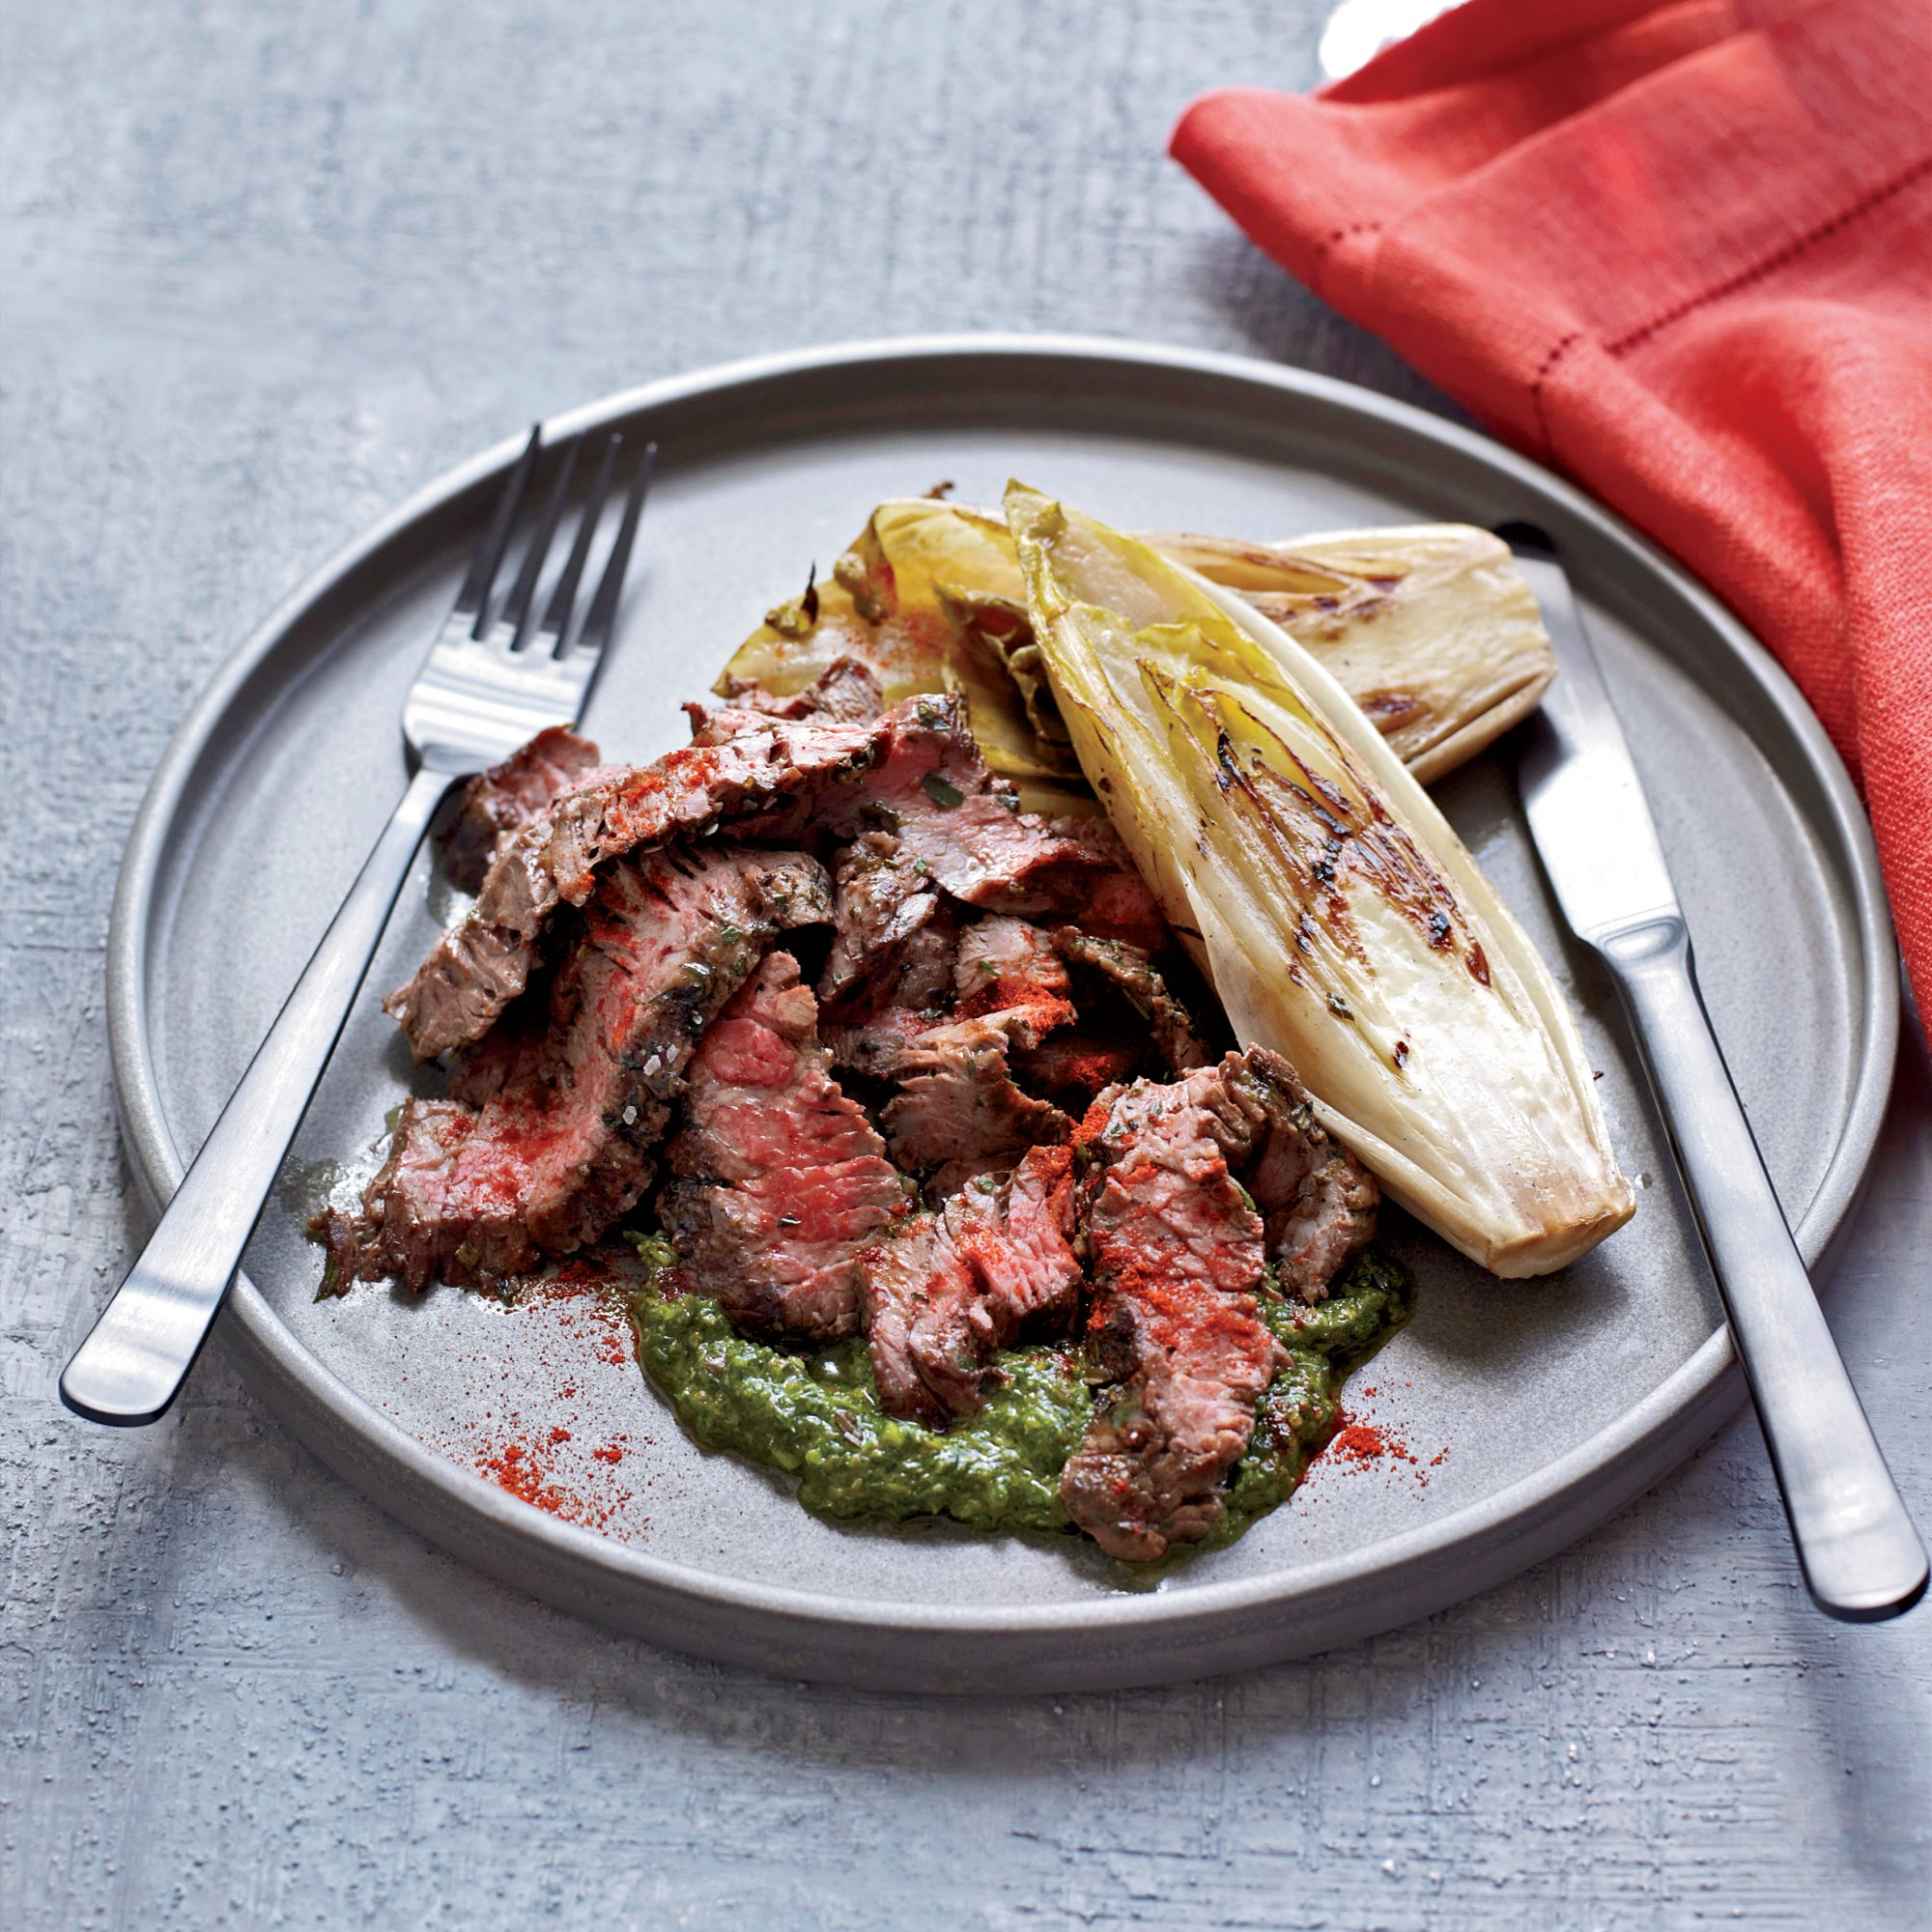 how to cook skirt steak in oven